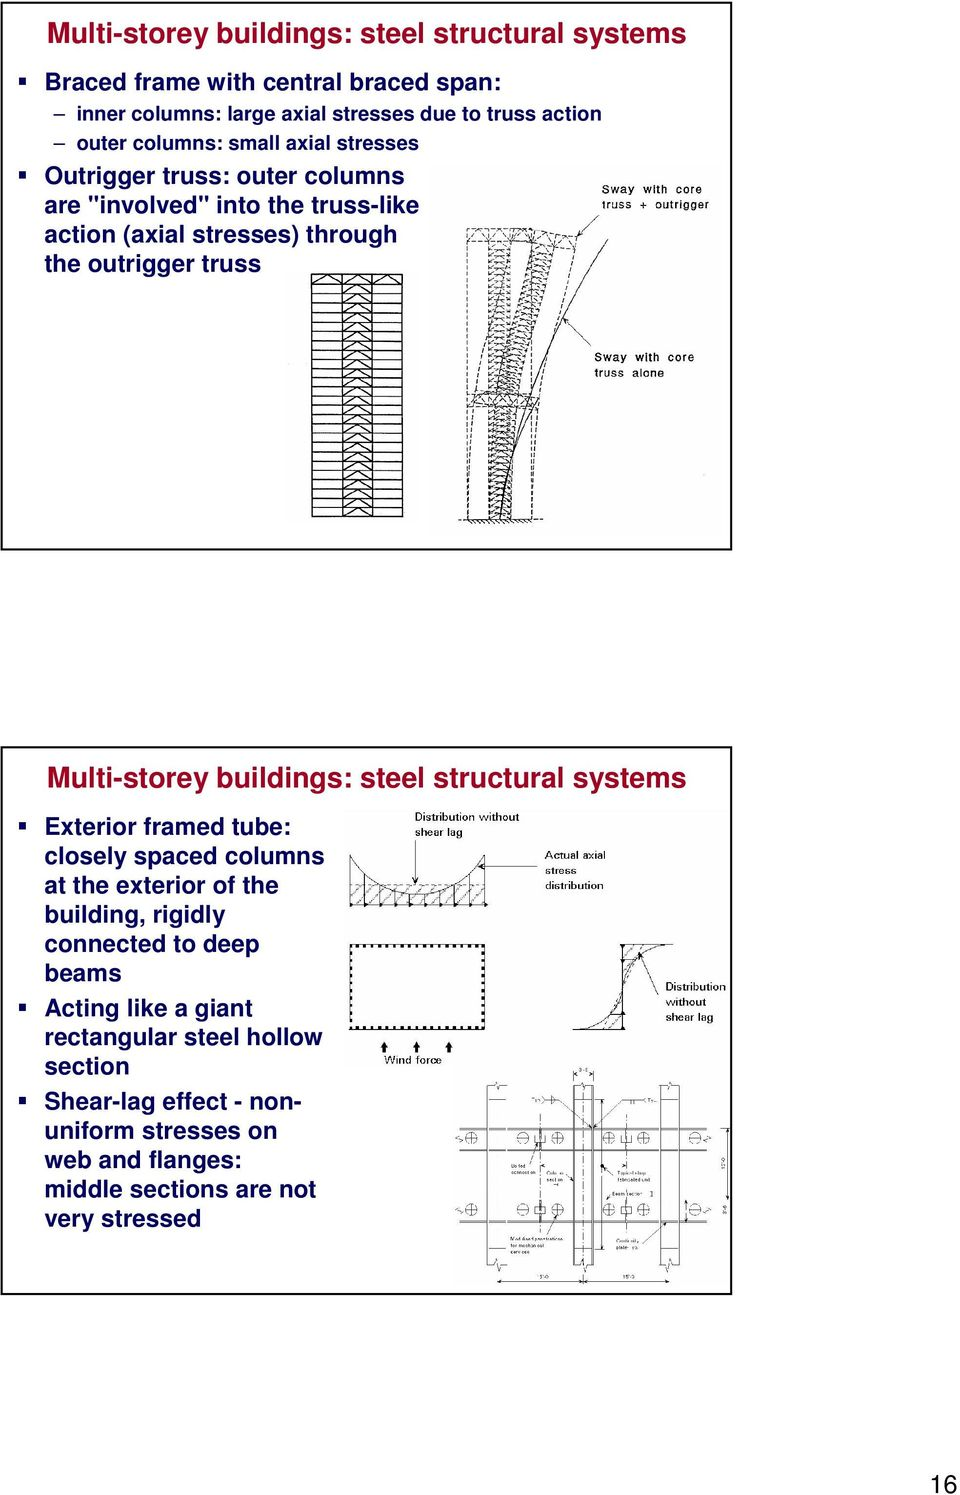 Multi-storey buildings: steel structural systems Exterior framed tube: closely spaced columns at the exterior of the building, rigidly connected to deep